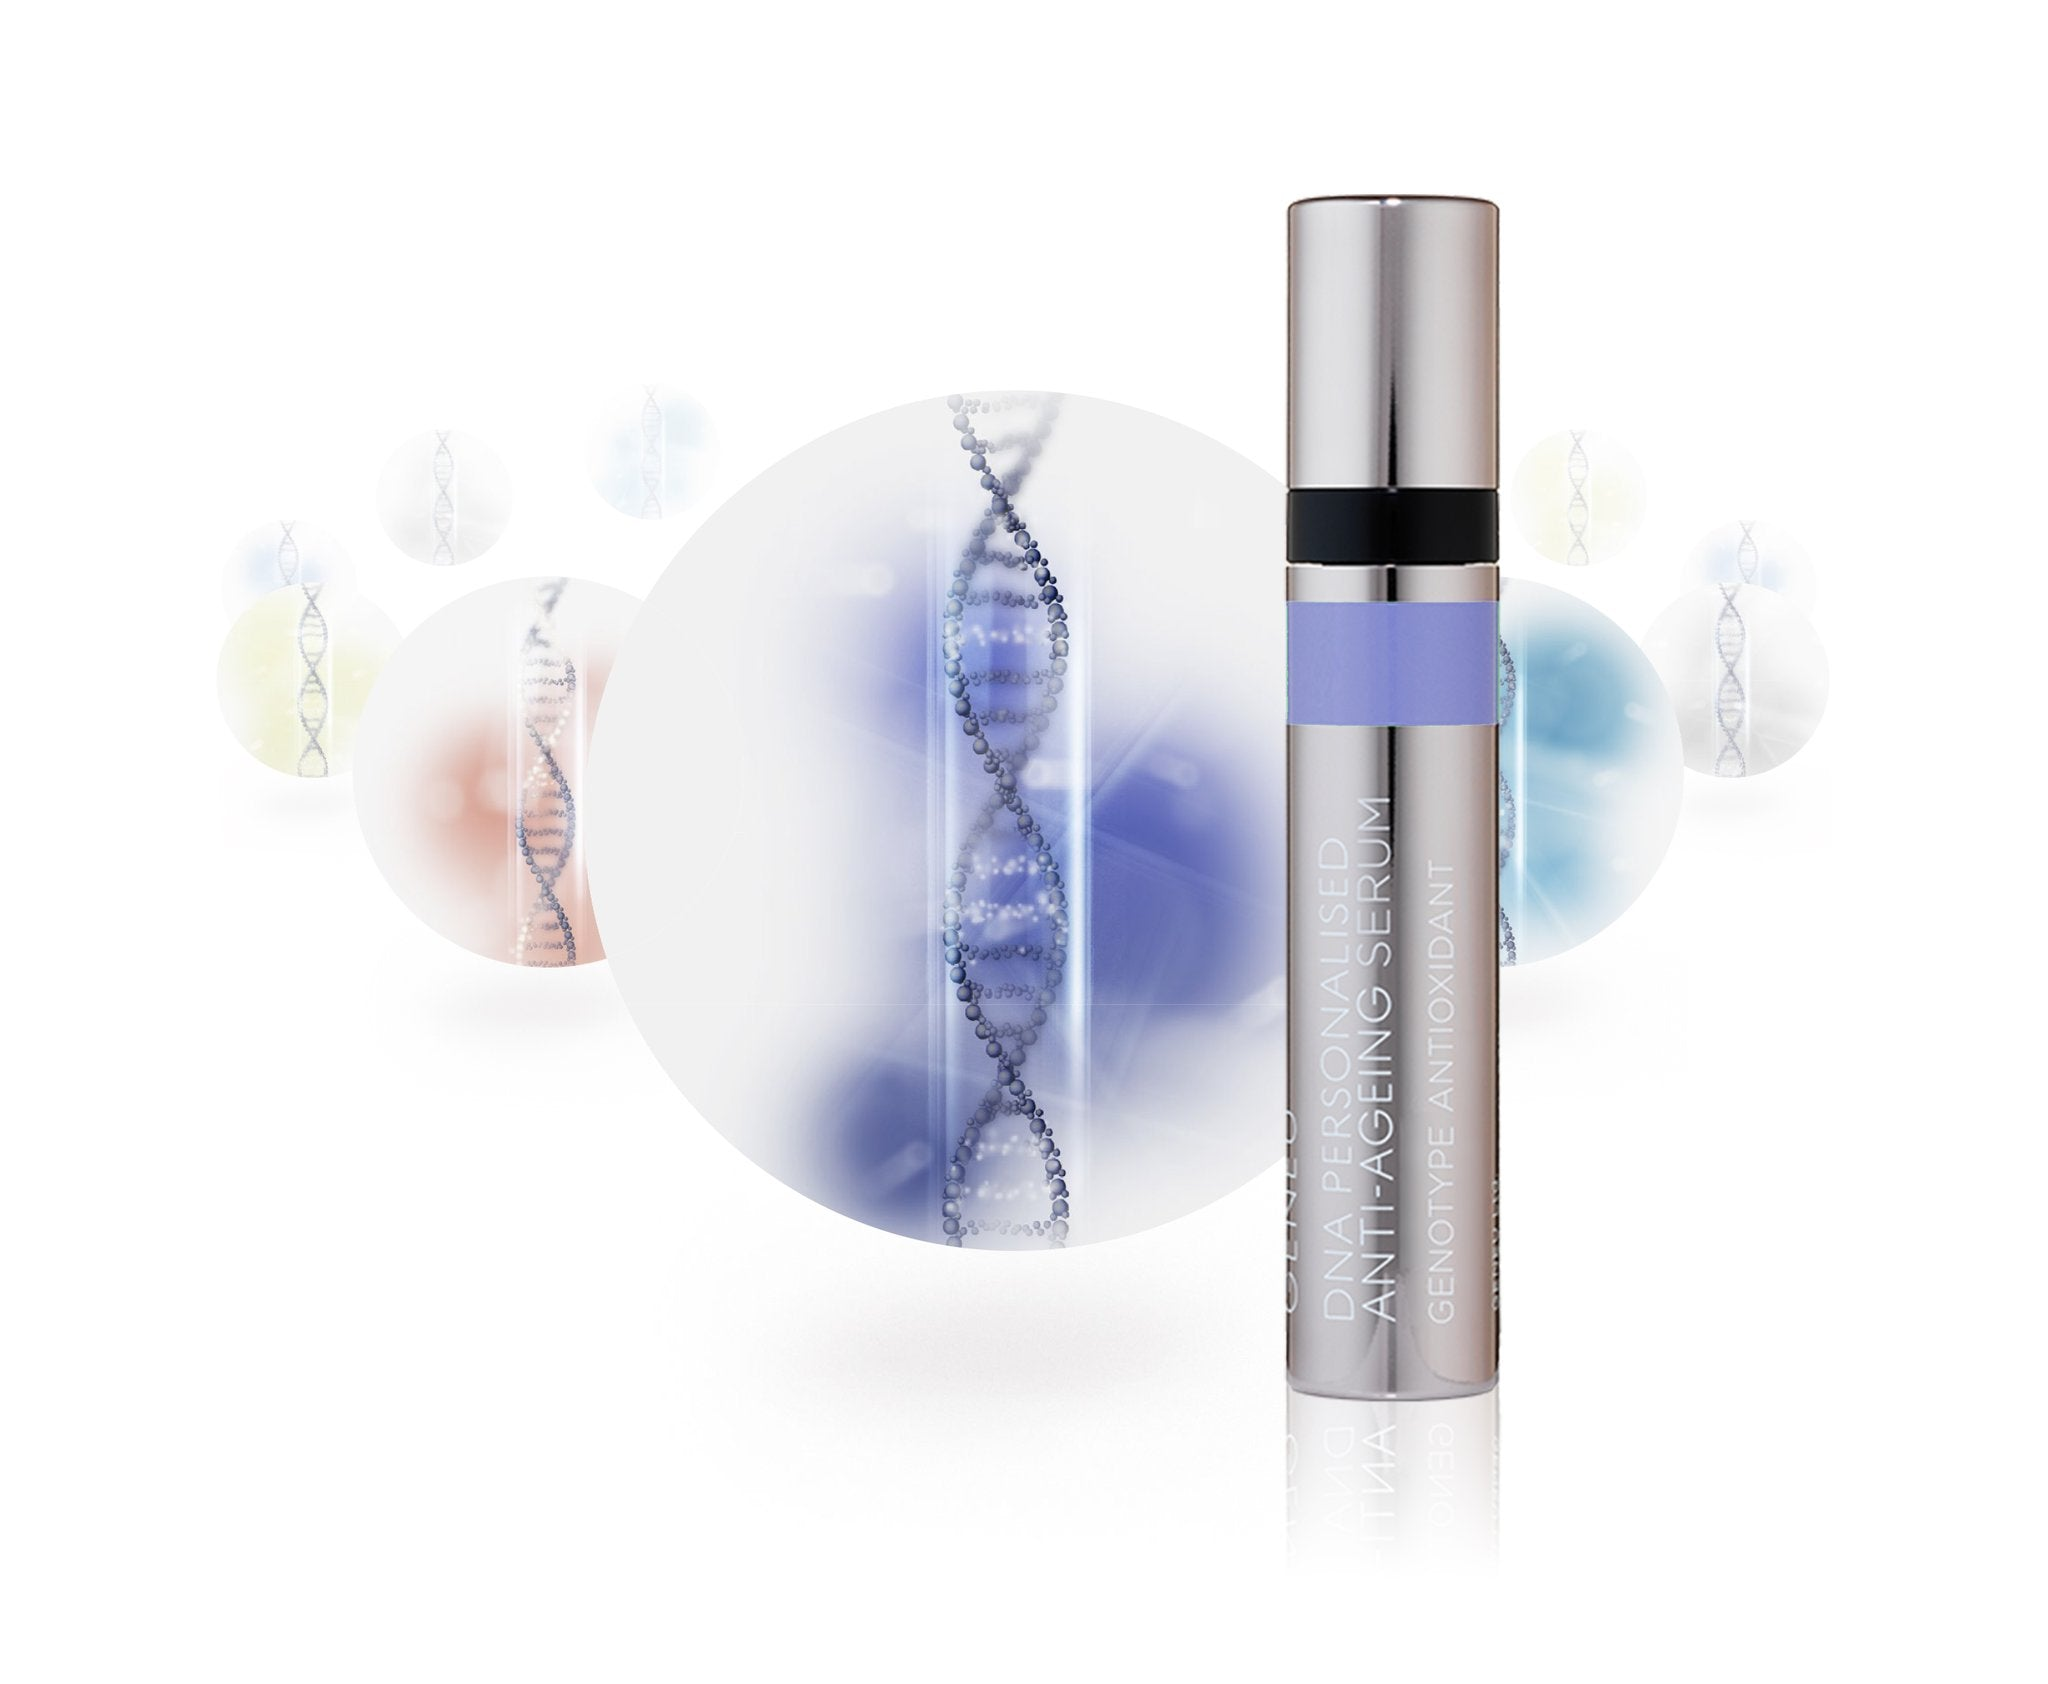 GENEU DNA Prescribed Anti Aging AOX serum